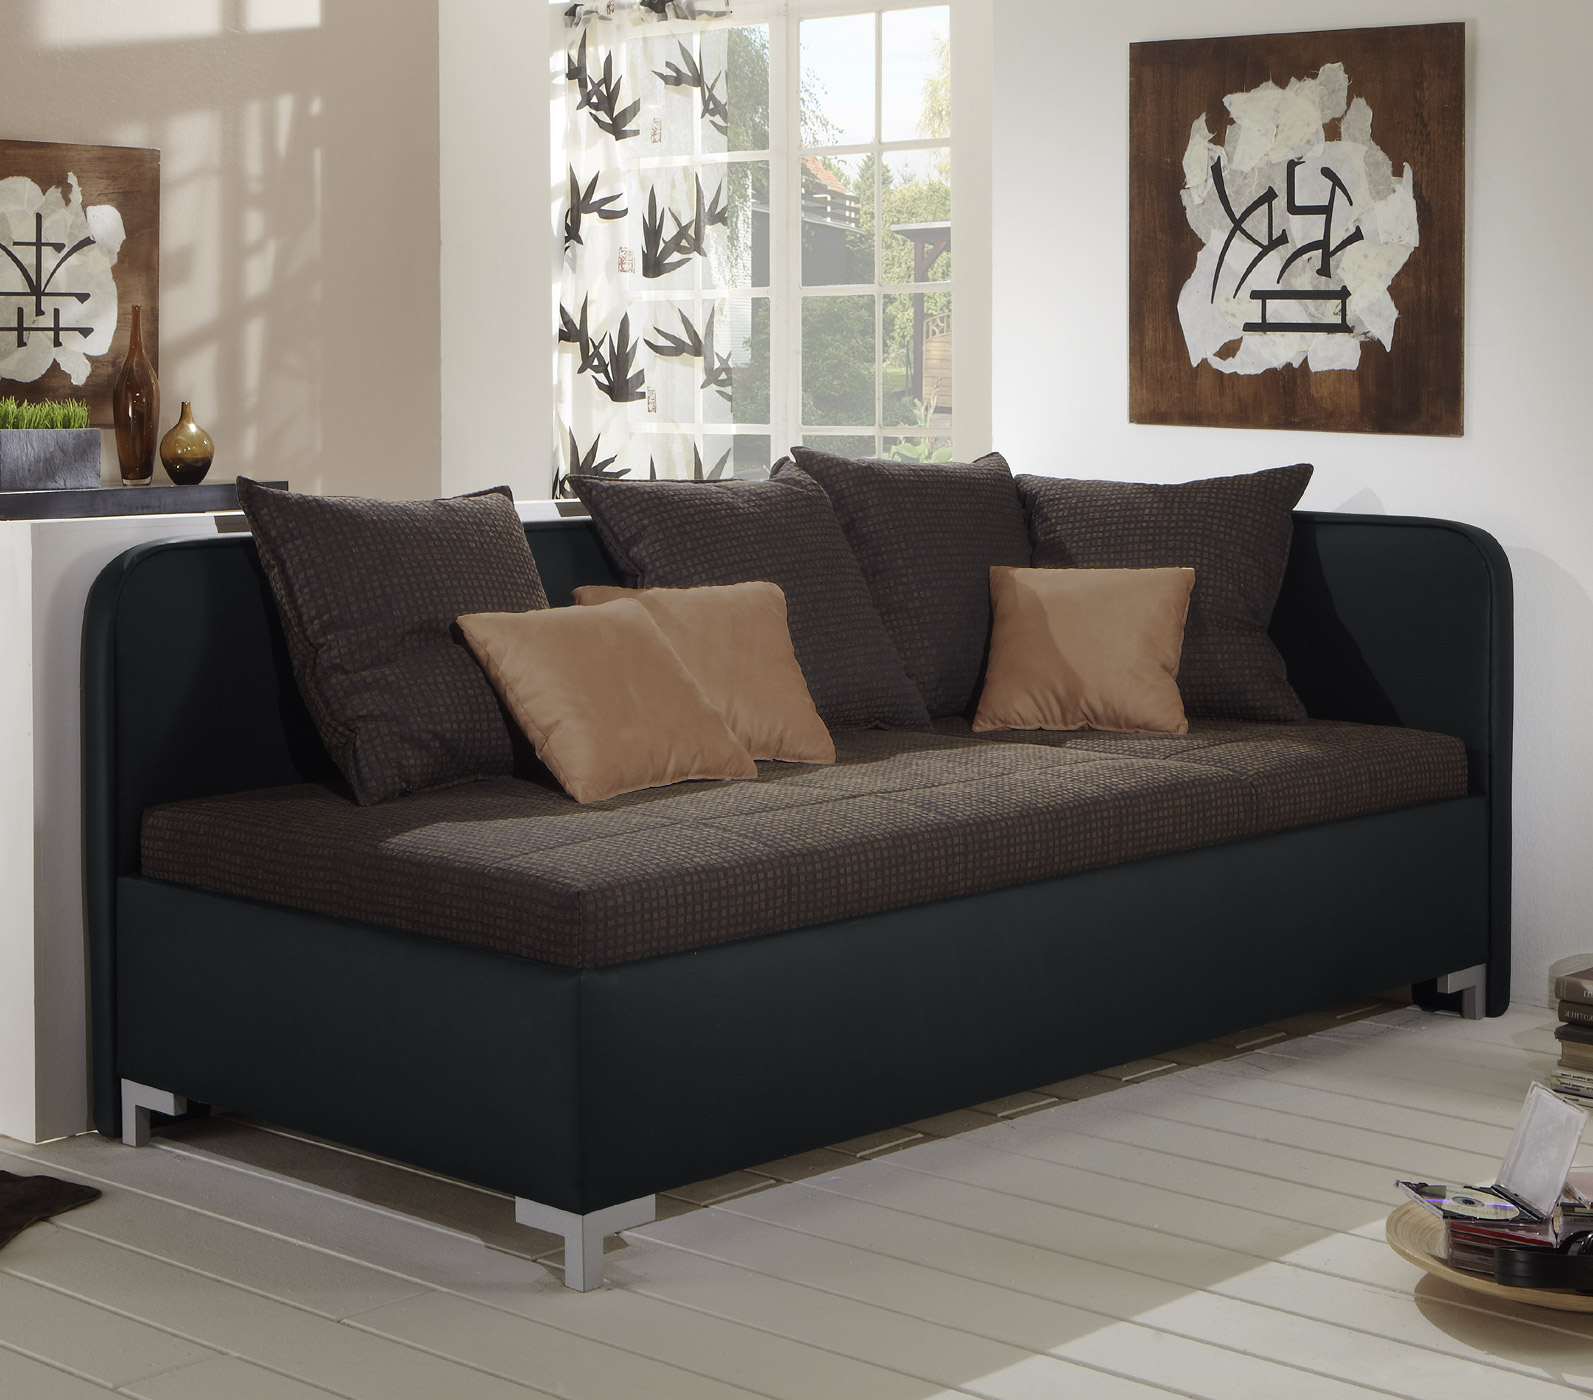 studioliege mit bettkasten z b mit lattenrost matratze anteo. Black Bedroom Furniture Sets. Home Design Ideas